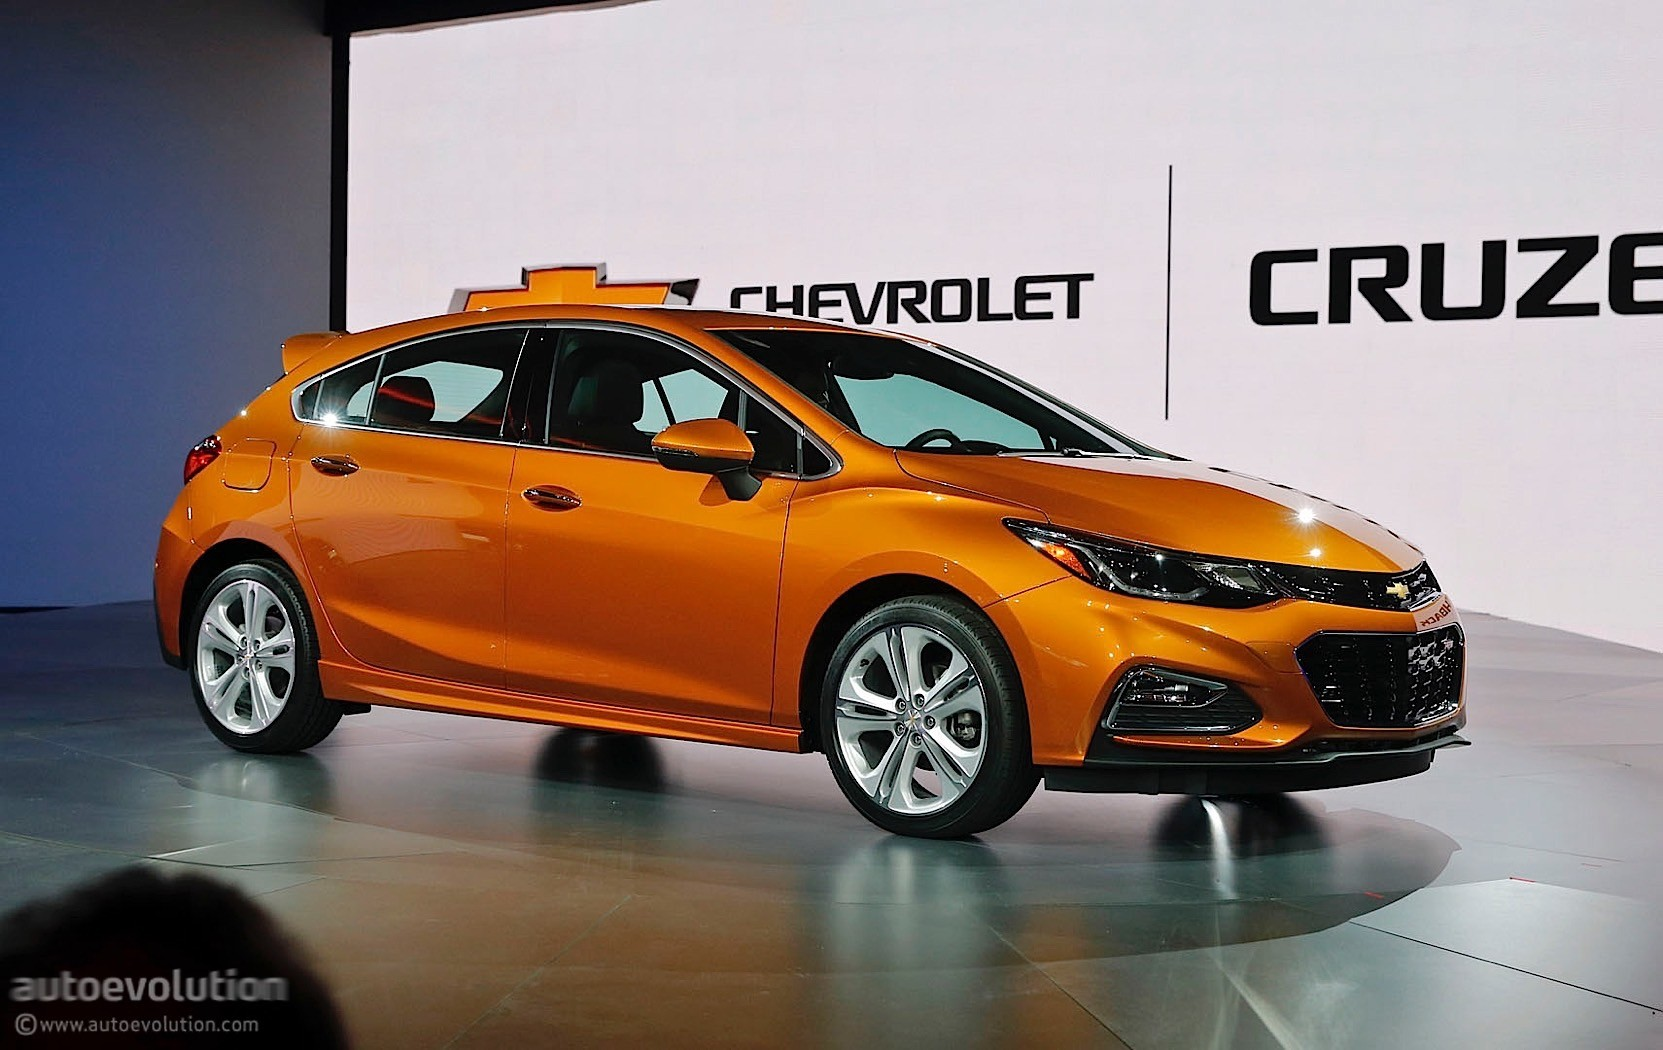 2017 chevy cruze review hints at hatchback comeback in america autoevolution. Black Bedroom Furniture Sets. Home Design Ideas